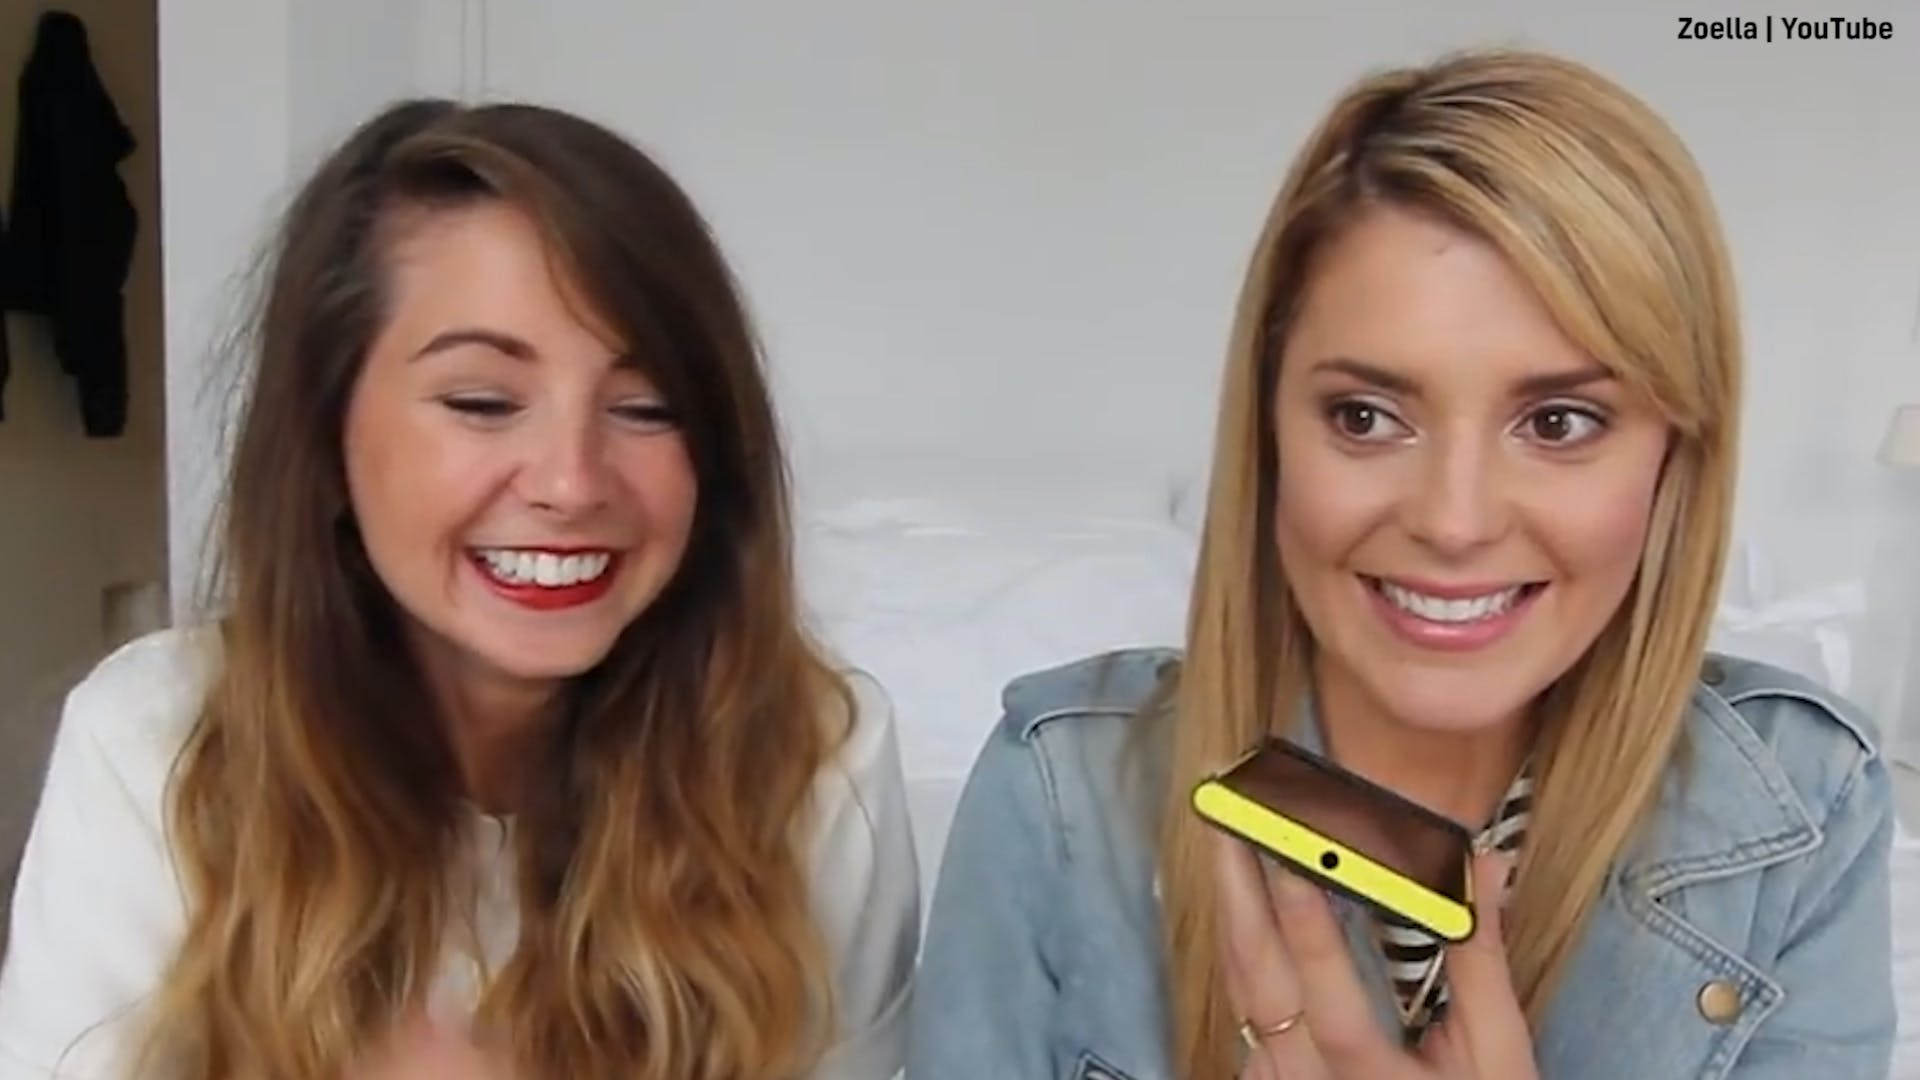 Zoella and DailyGrace make a prank call